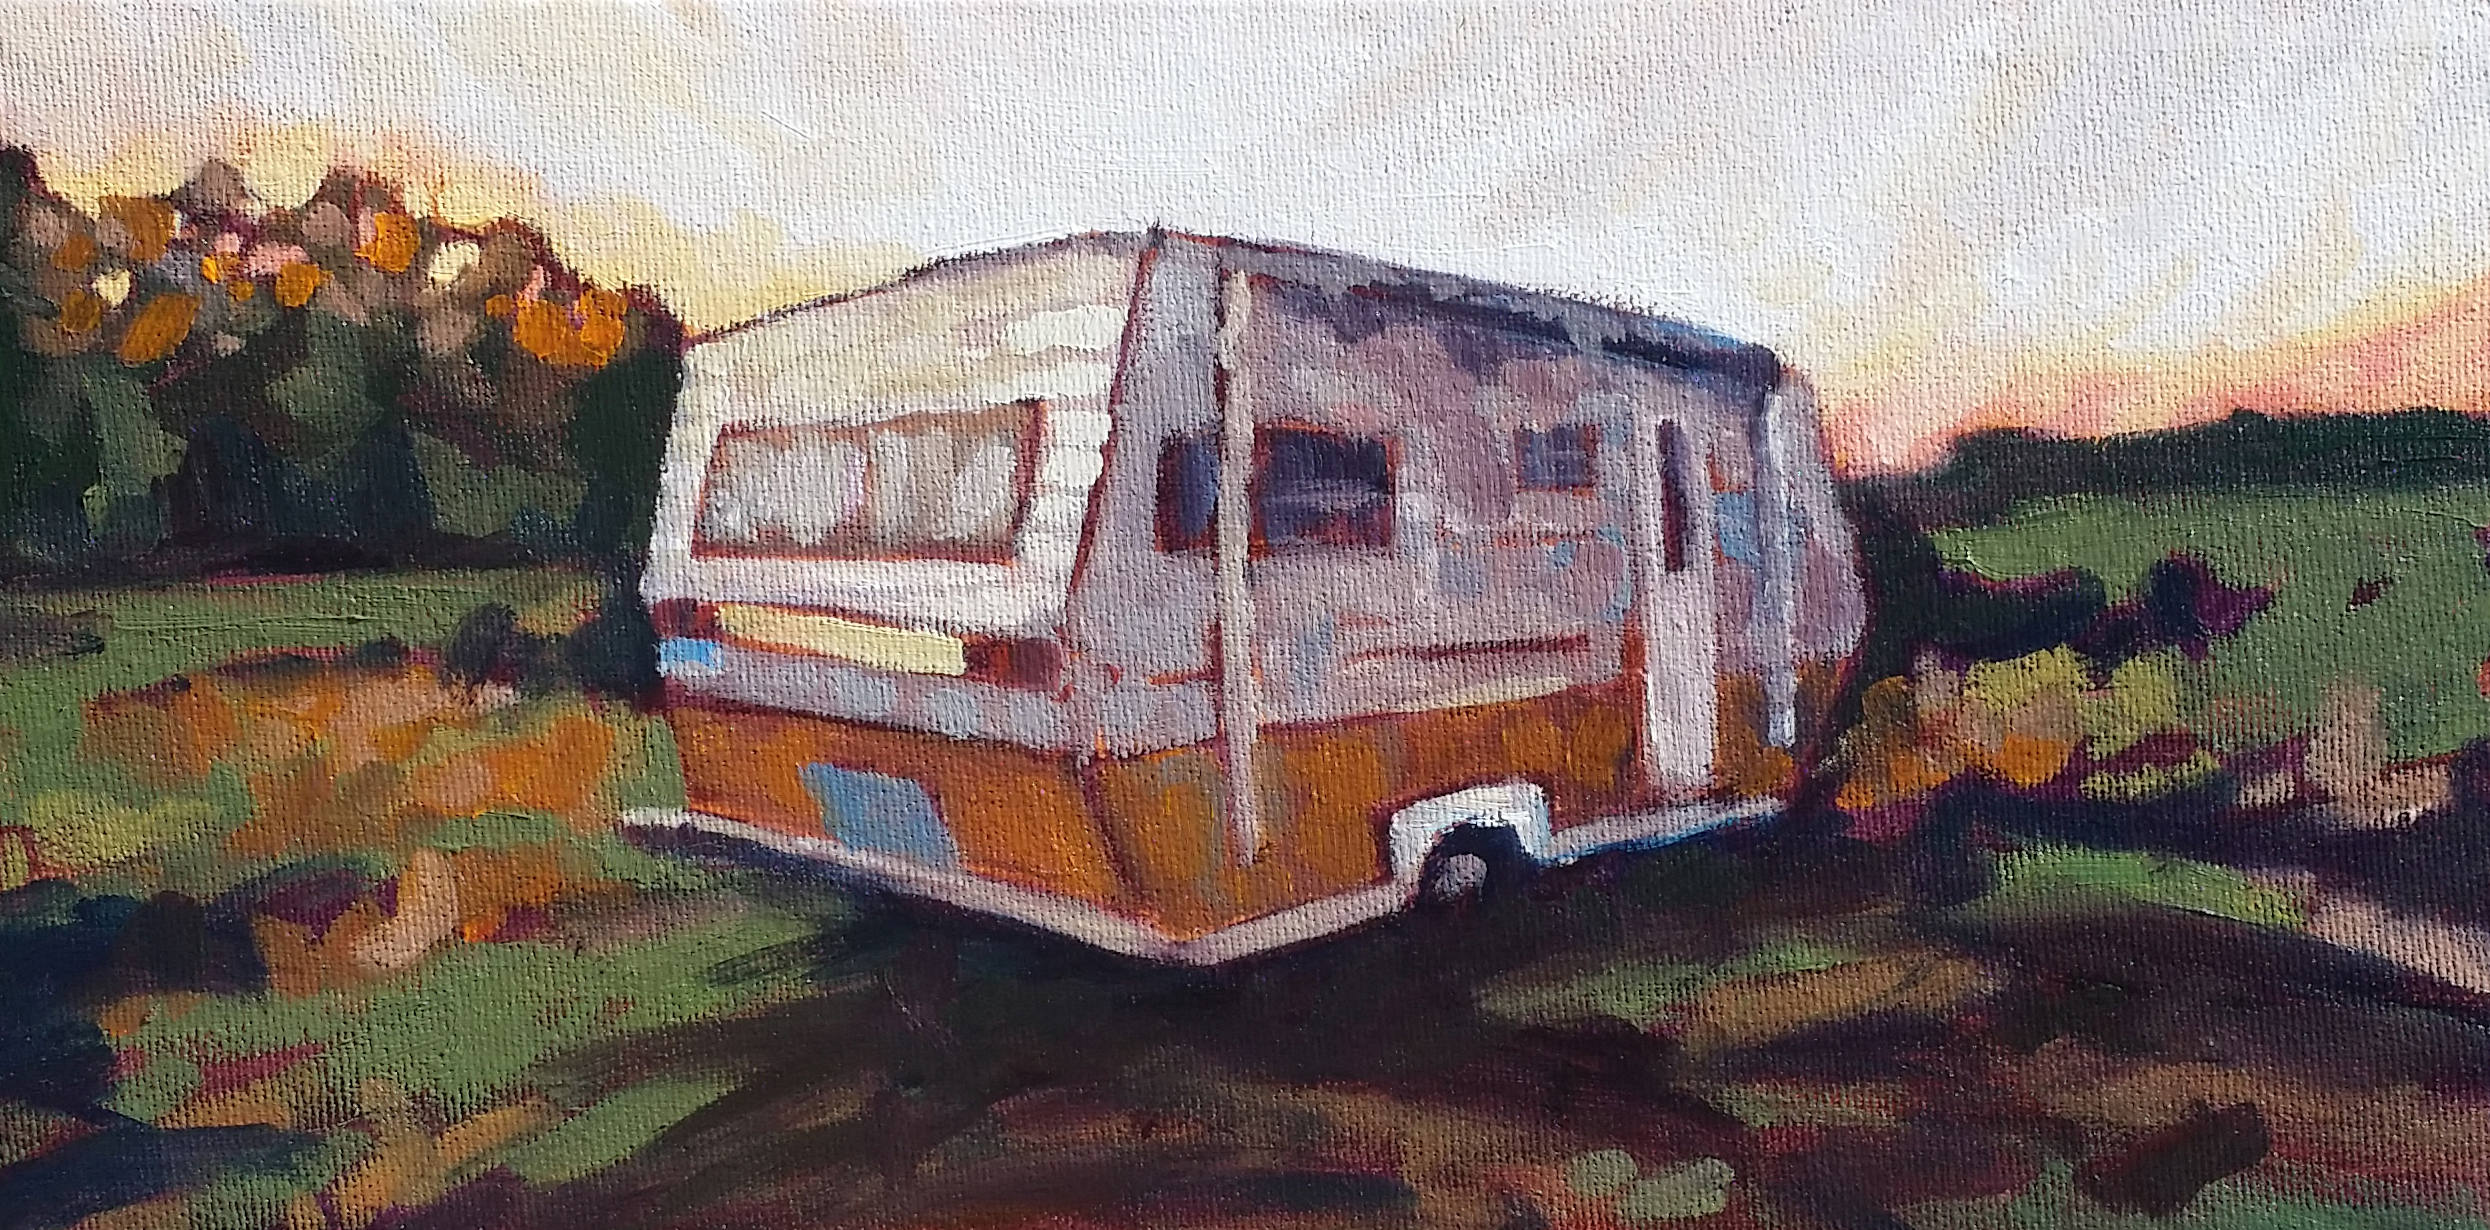 Camper, Windecker Road, Cayuga, ON